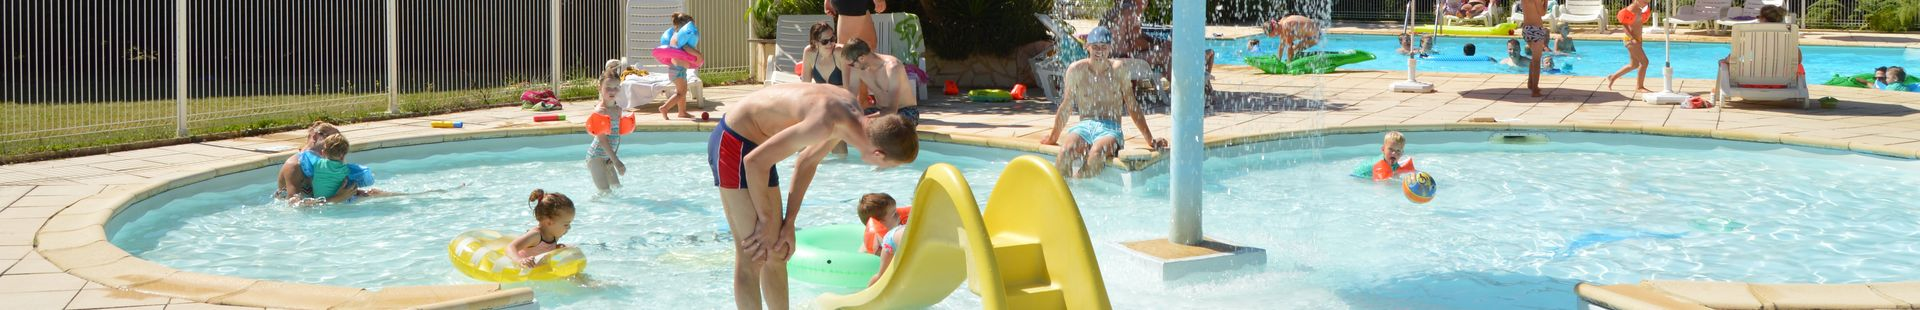 Camping familial - Le Rêve - Pataugeoire